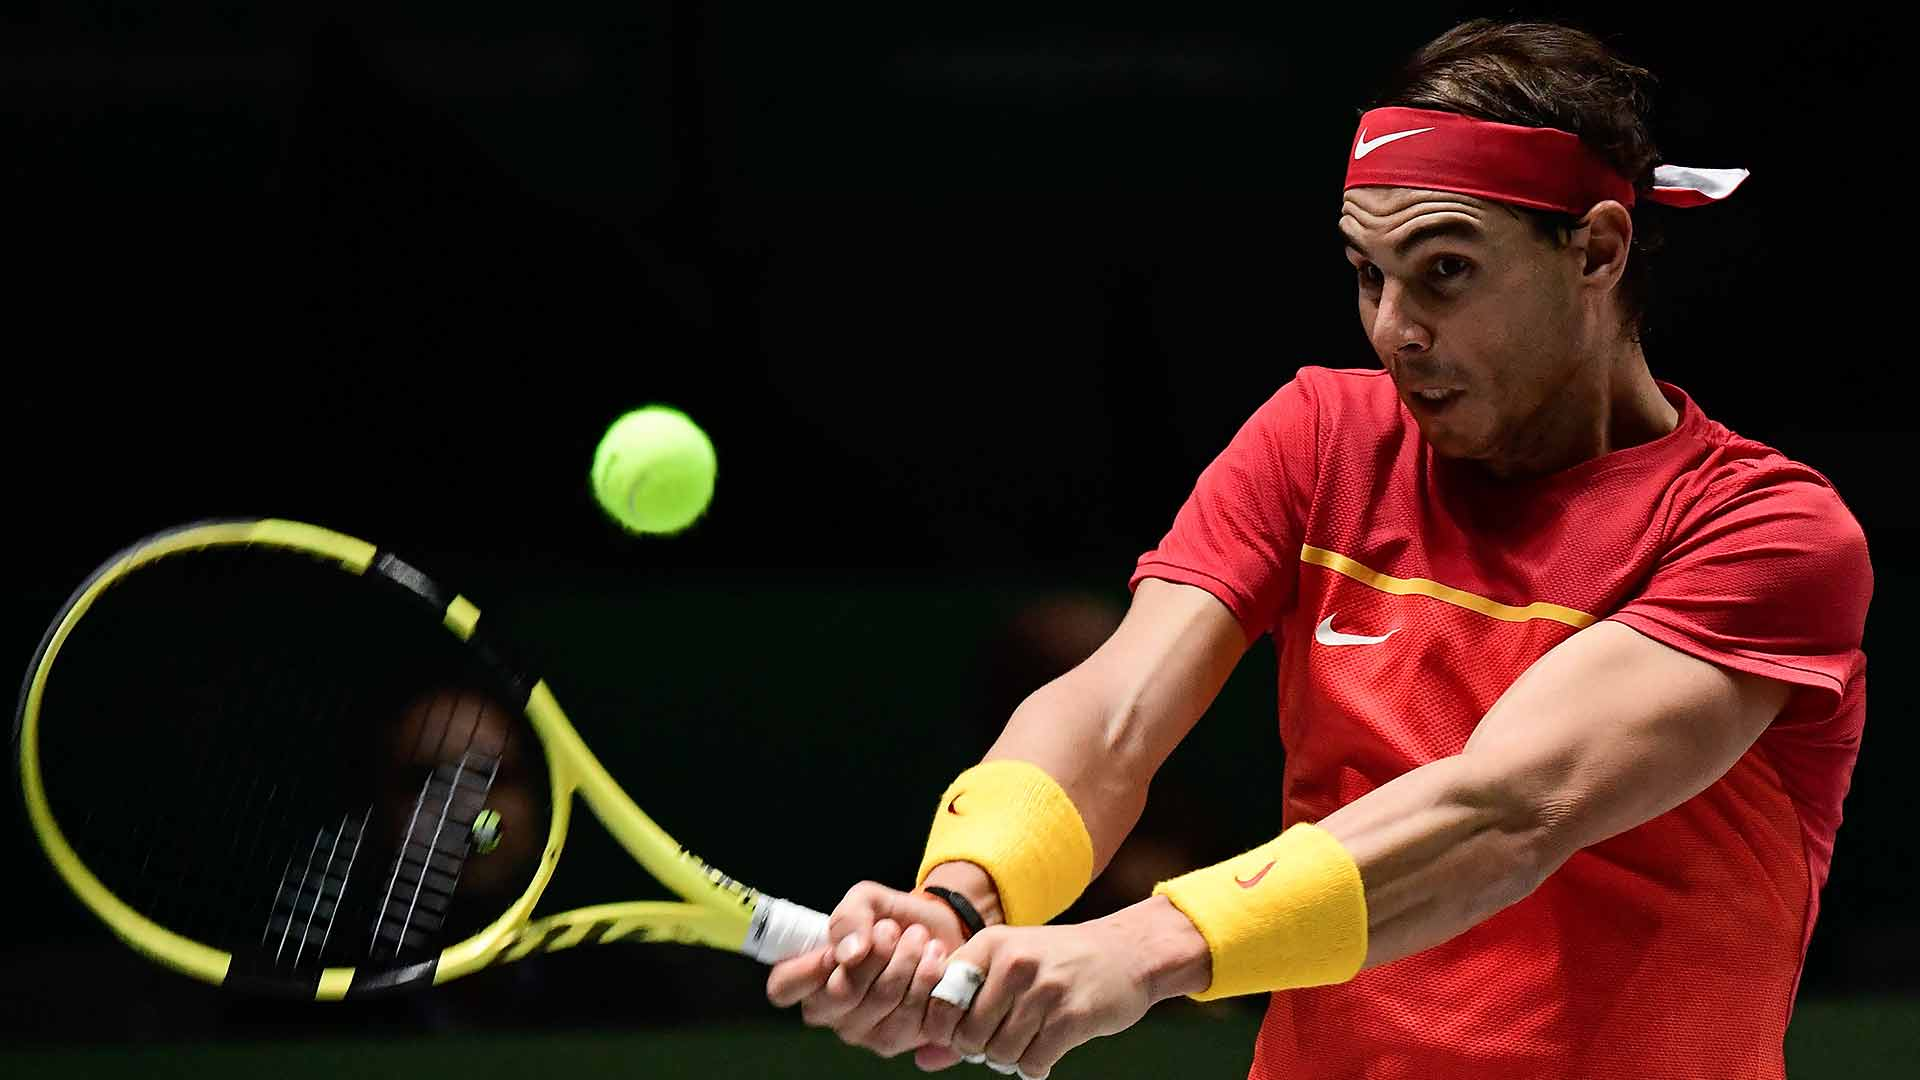 Rafael Nadal puts Spain on the board on Tuesday at the Davis Cup Finals in Madrid.